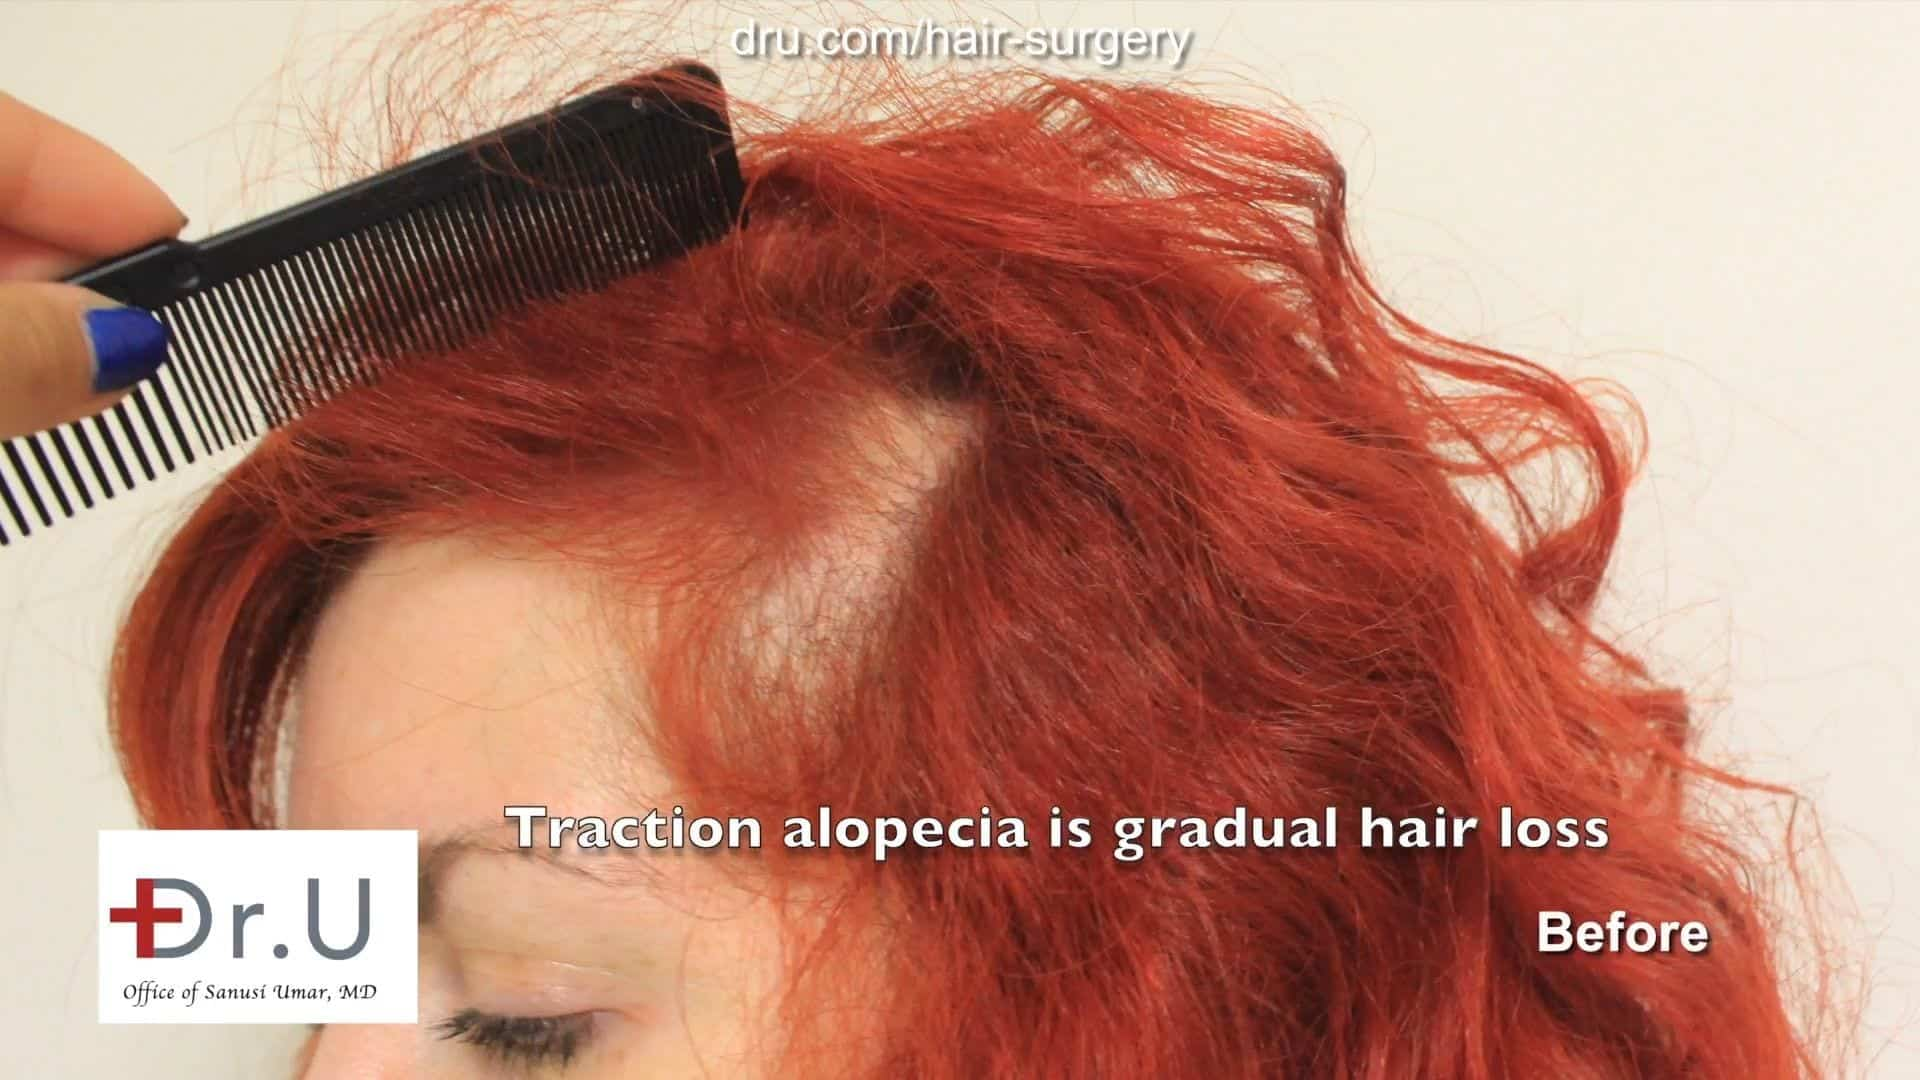 Before hair transplant for female traction alopecia using Dr UGraft